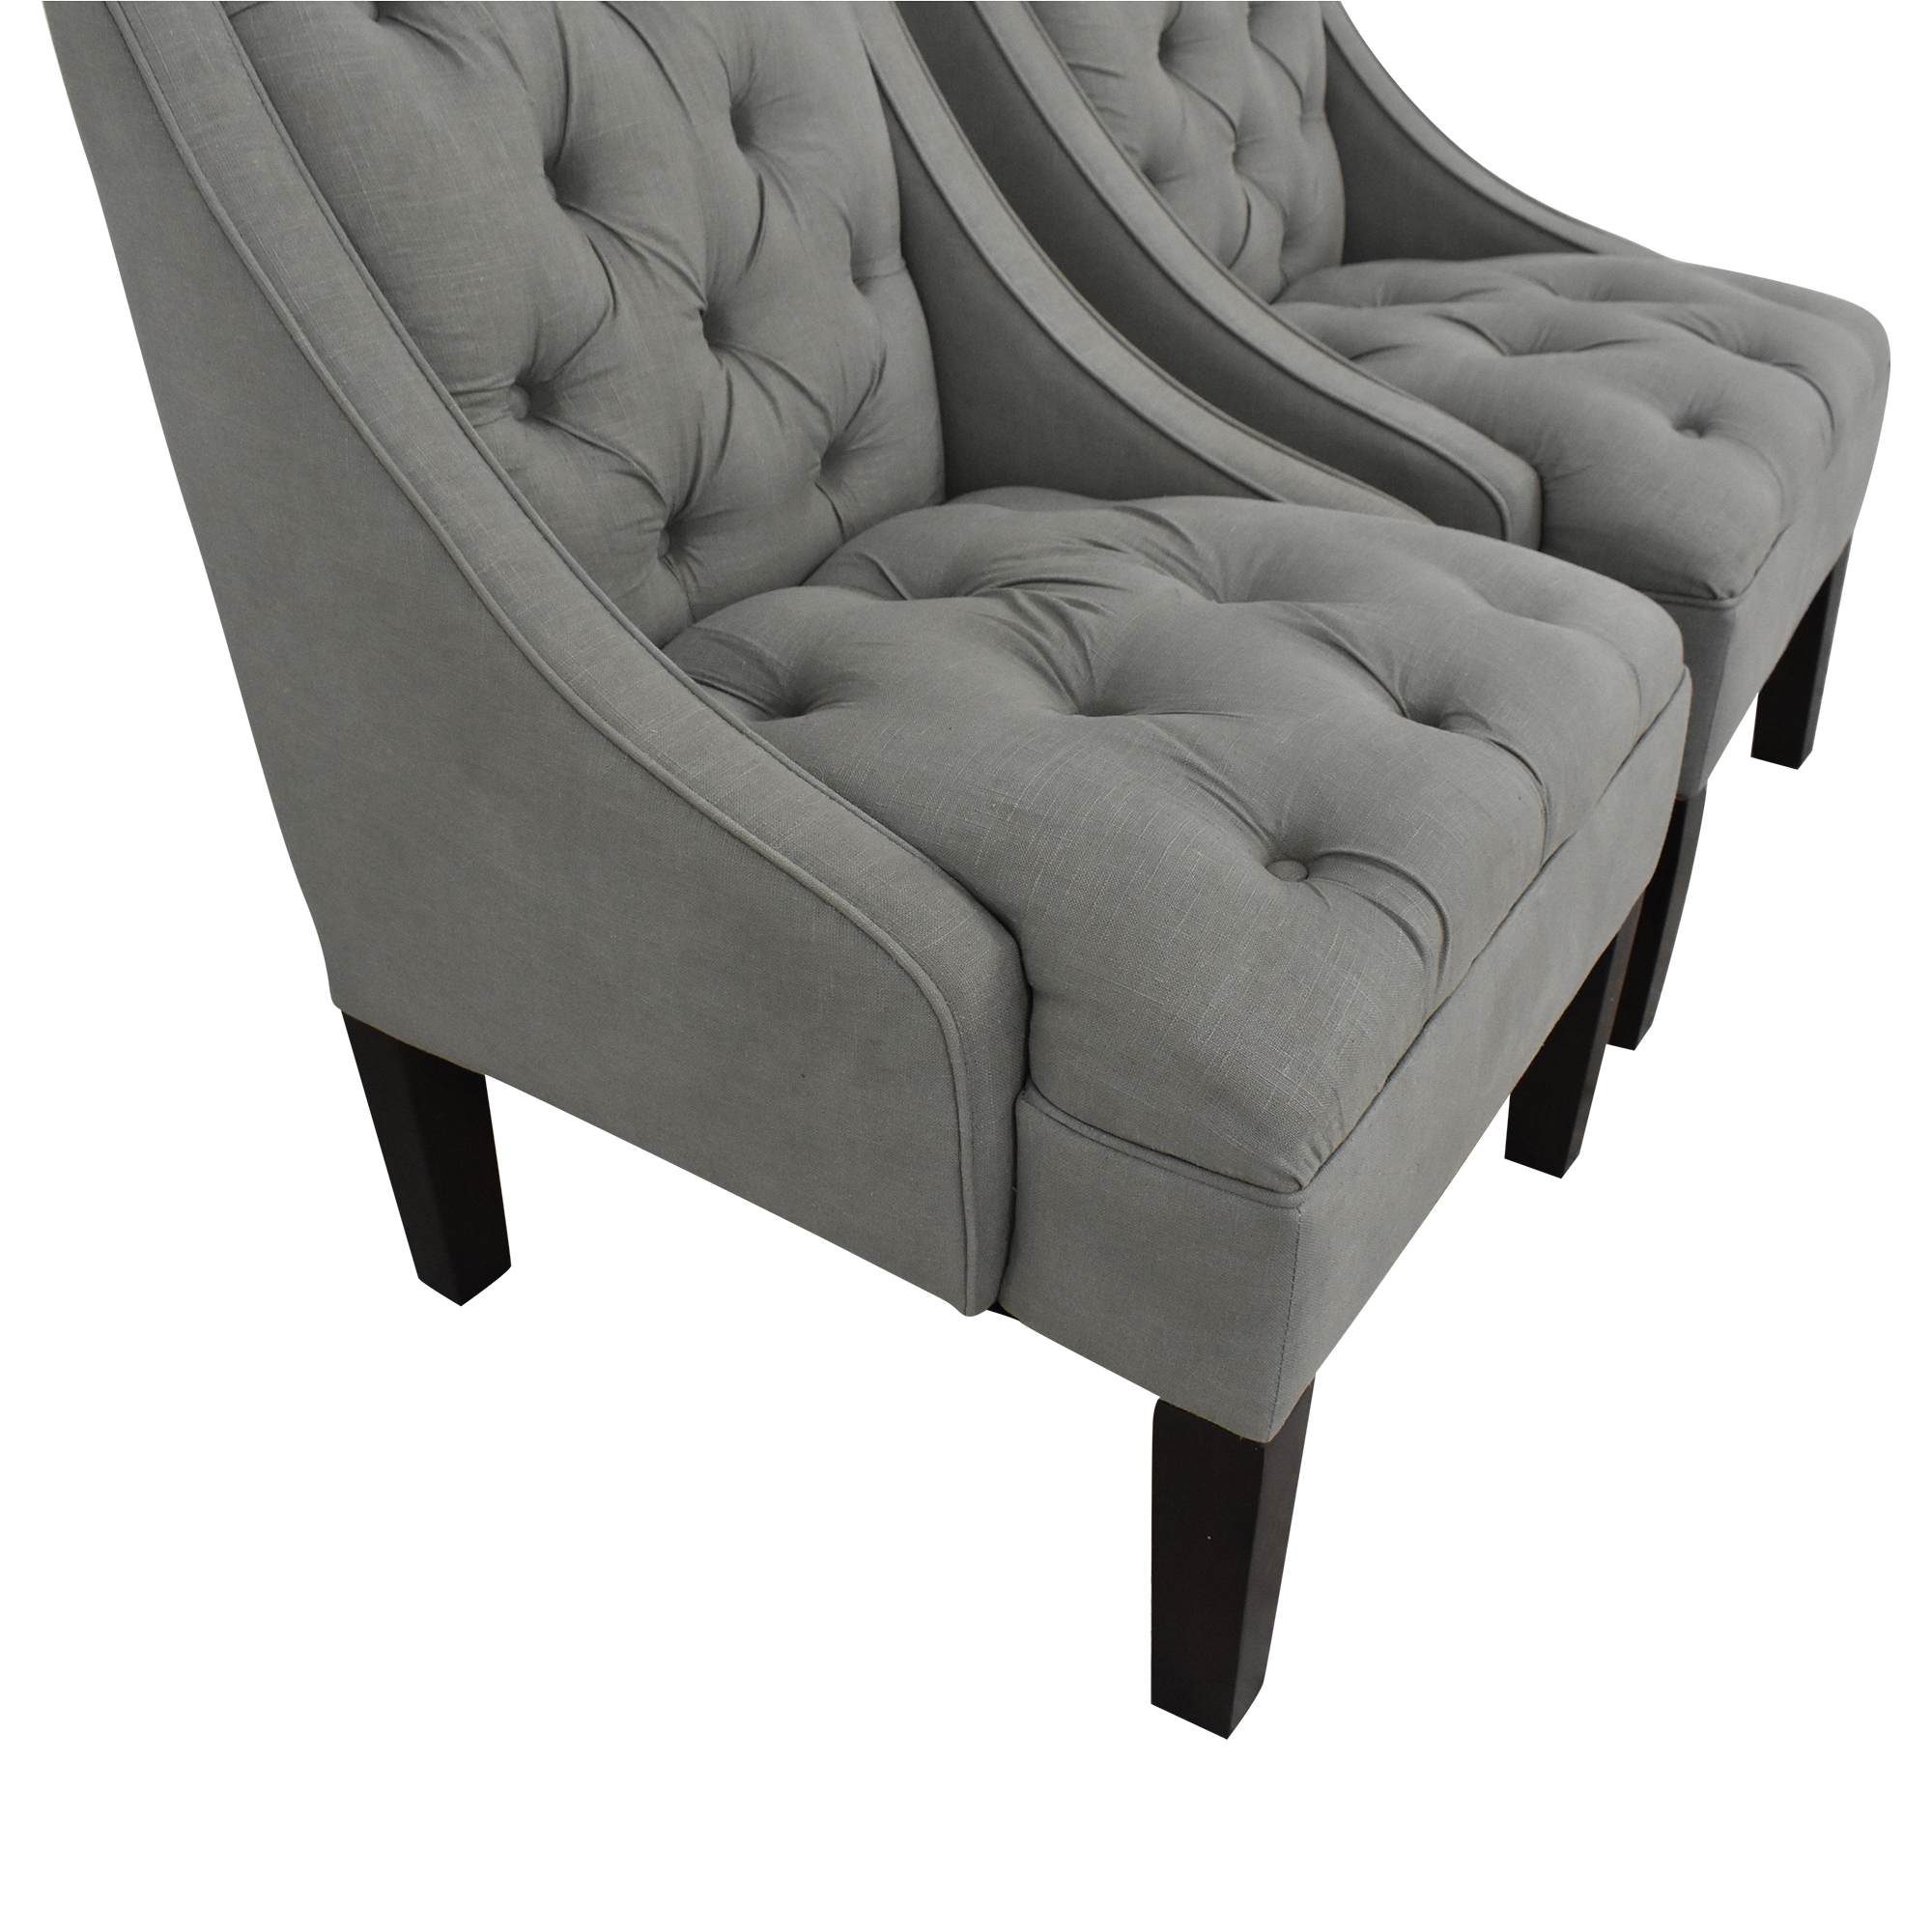 buy Skyline Furniture Tufted Dining Chairs Skyline Furniture Chairs